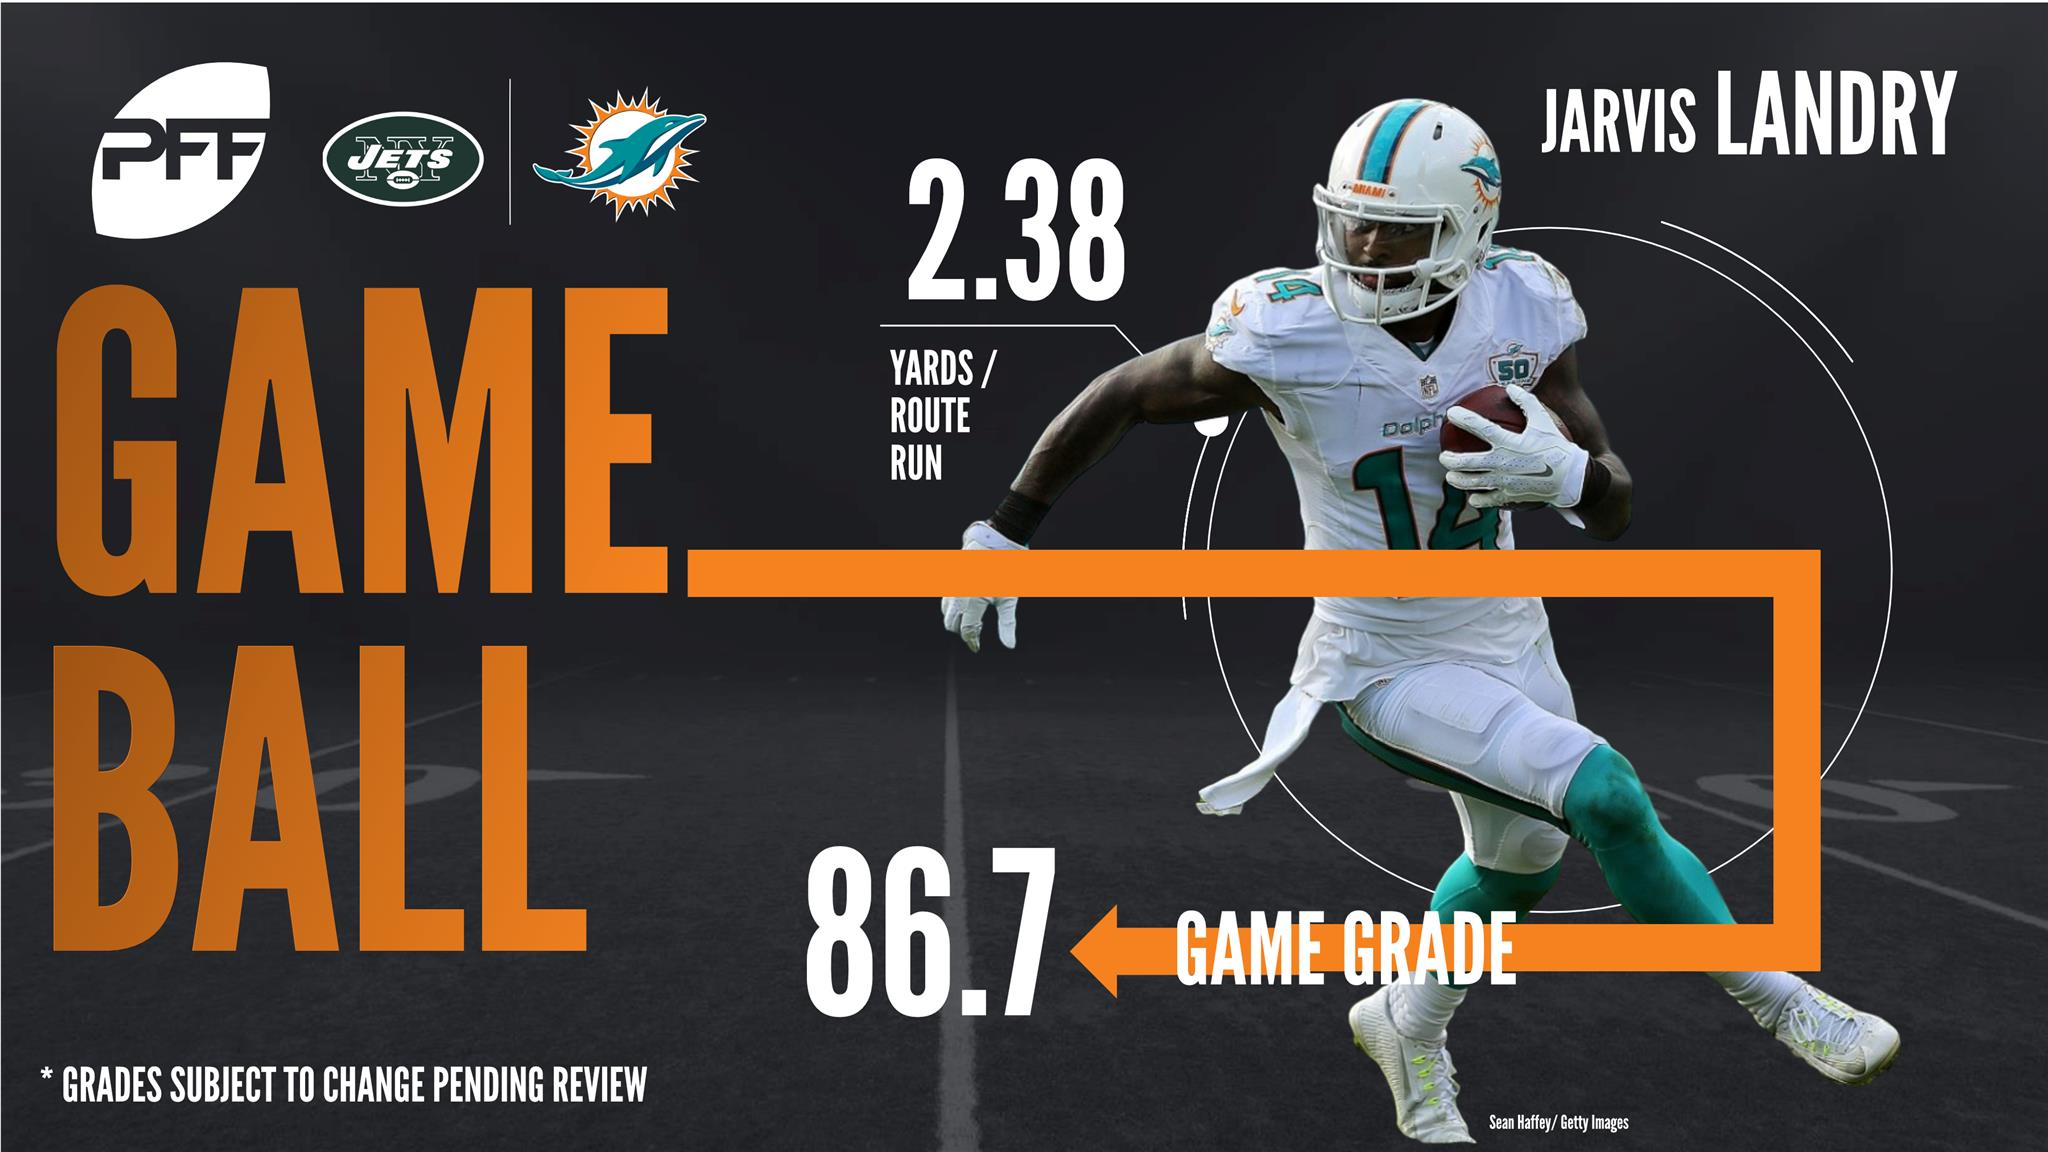 Jarvis Landry, Miami Dolphins, wide receiver